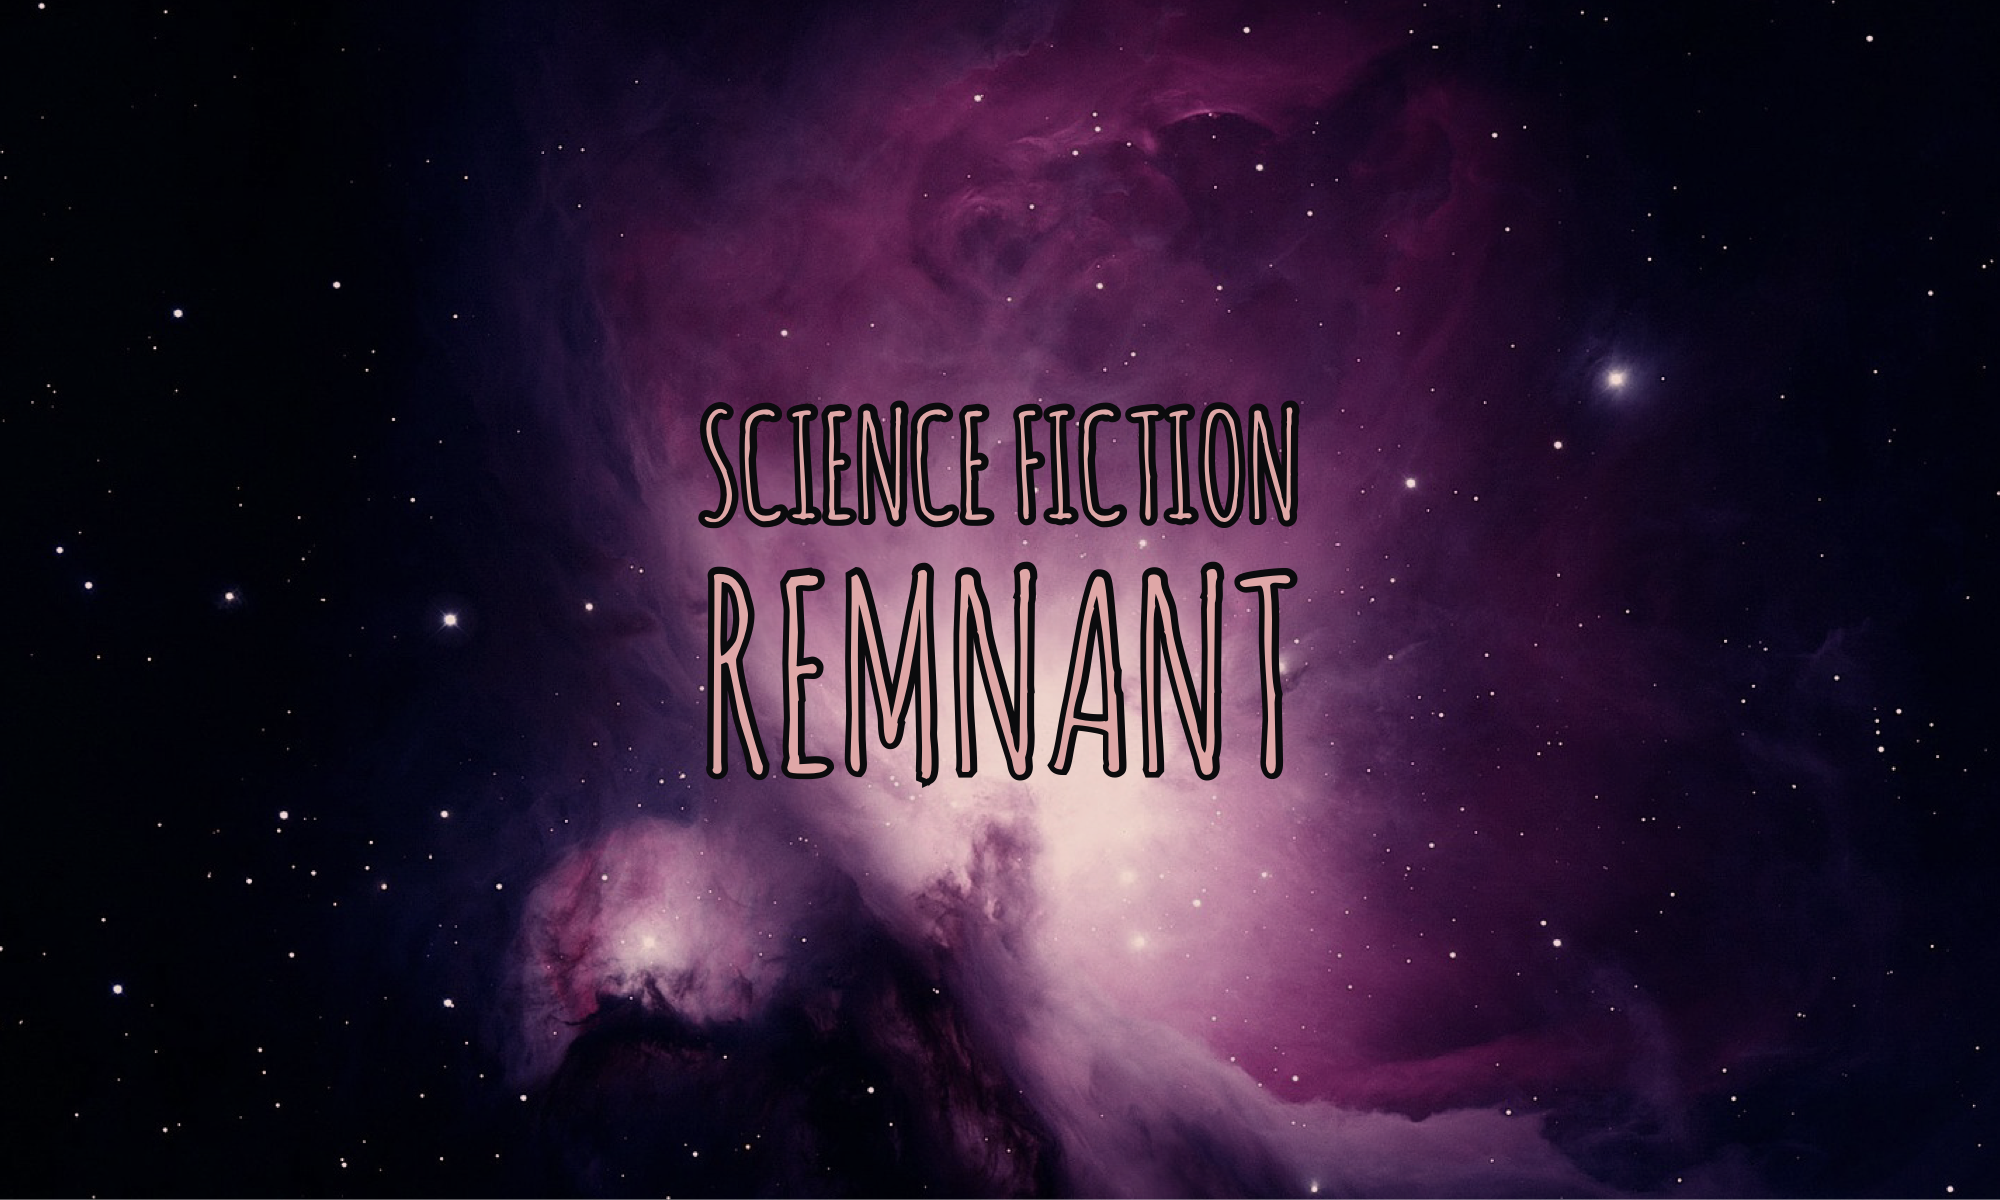 Science Fiction Remnant